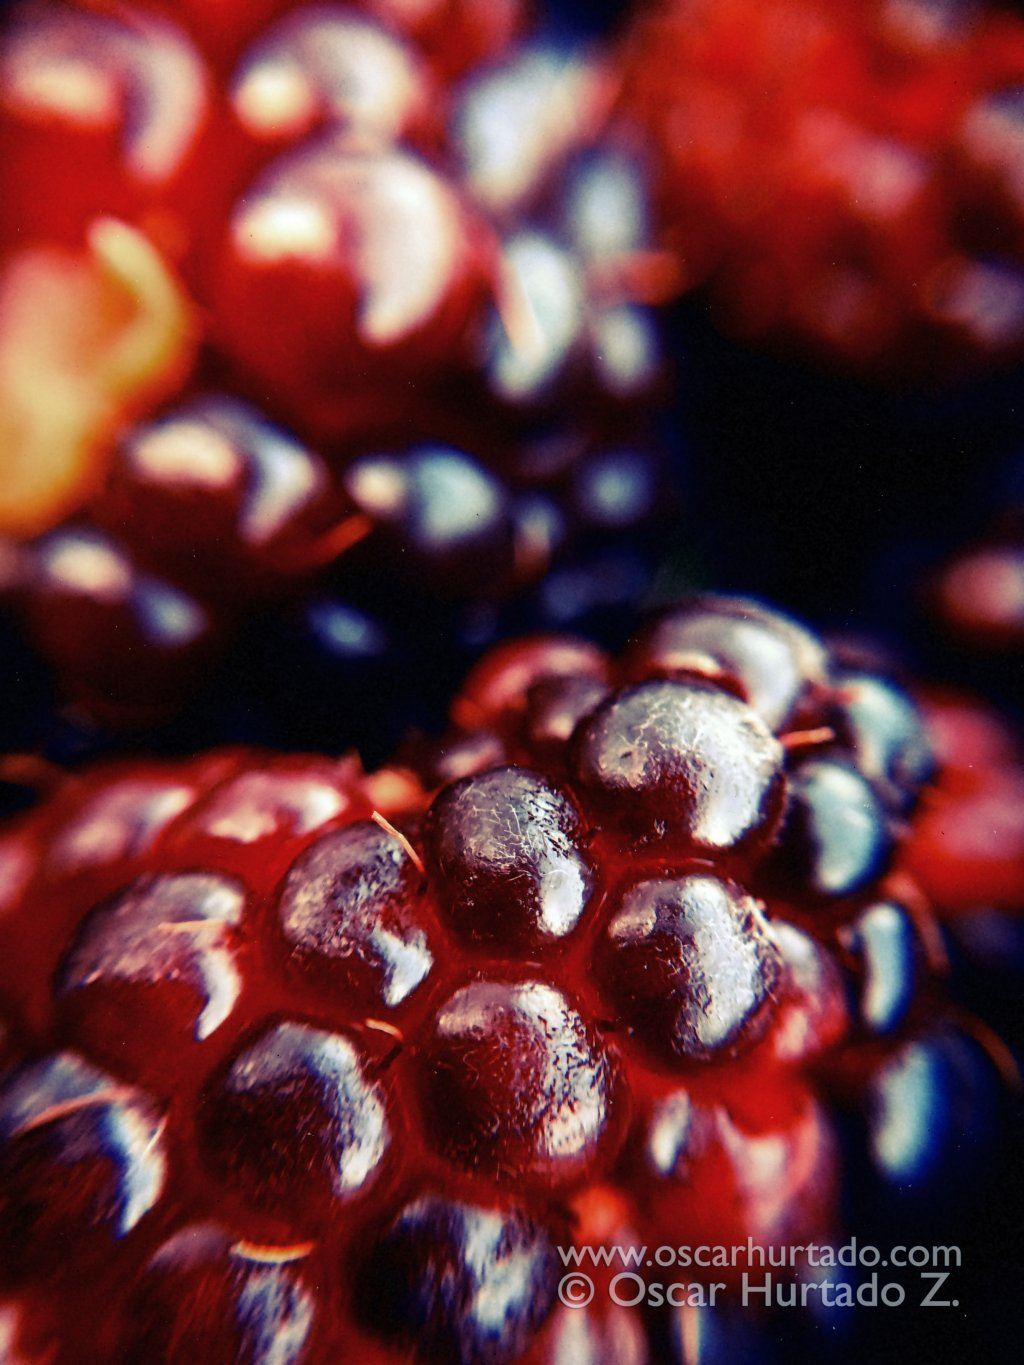 Macro shot of blackberries from the garden